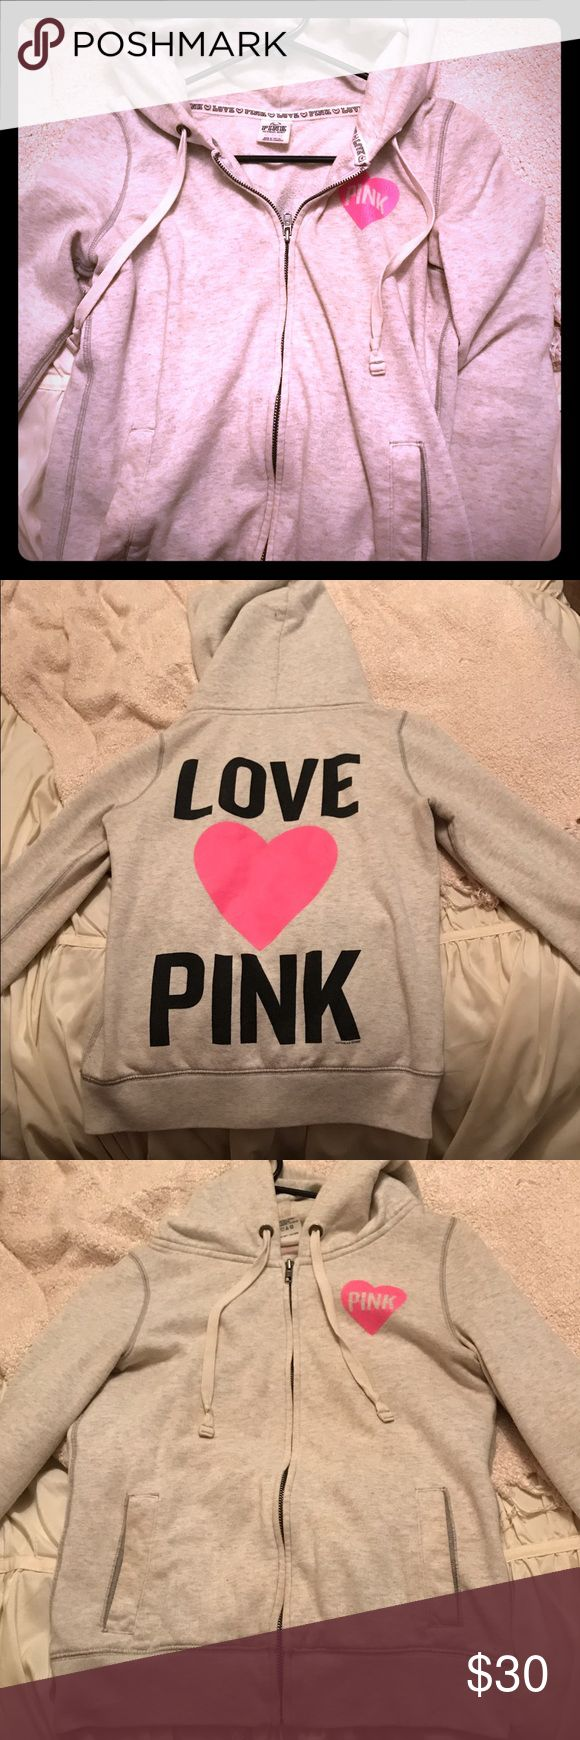 Victoria's Secret 'pink' zip up hoodie Victoria's Secret 'pink' zip up hoodie in good used condition. Color is light grey and it's an extra small, although I wear a small and this fits fine. Has been worn and washed several times but is in great condition with no stains or damage. PINK Victoria's Secret Tops Sweatshirts & Hoodies